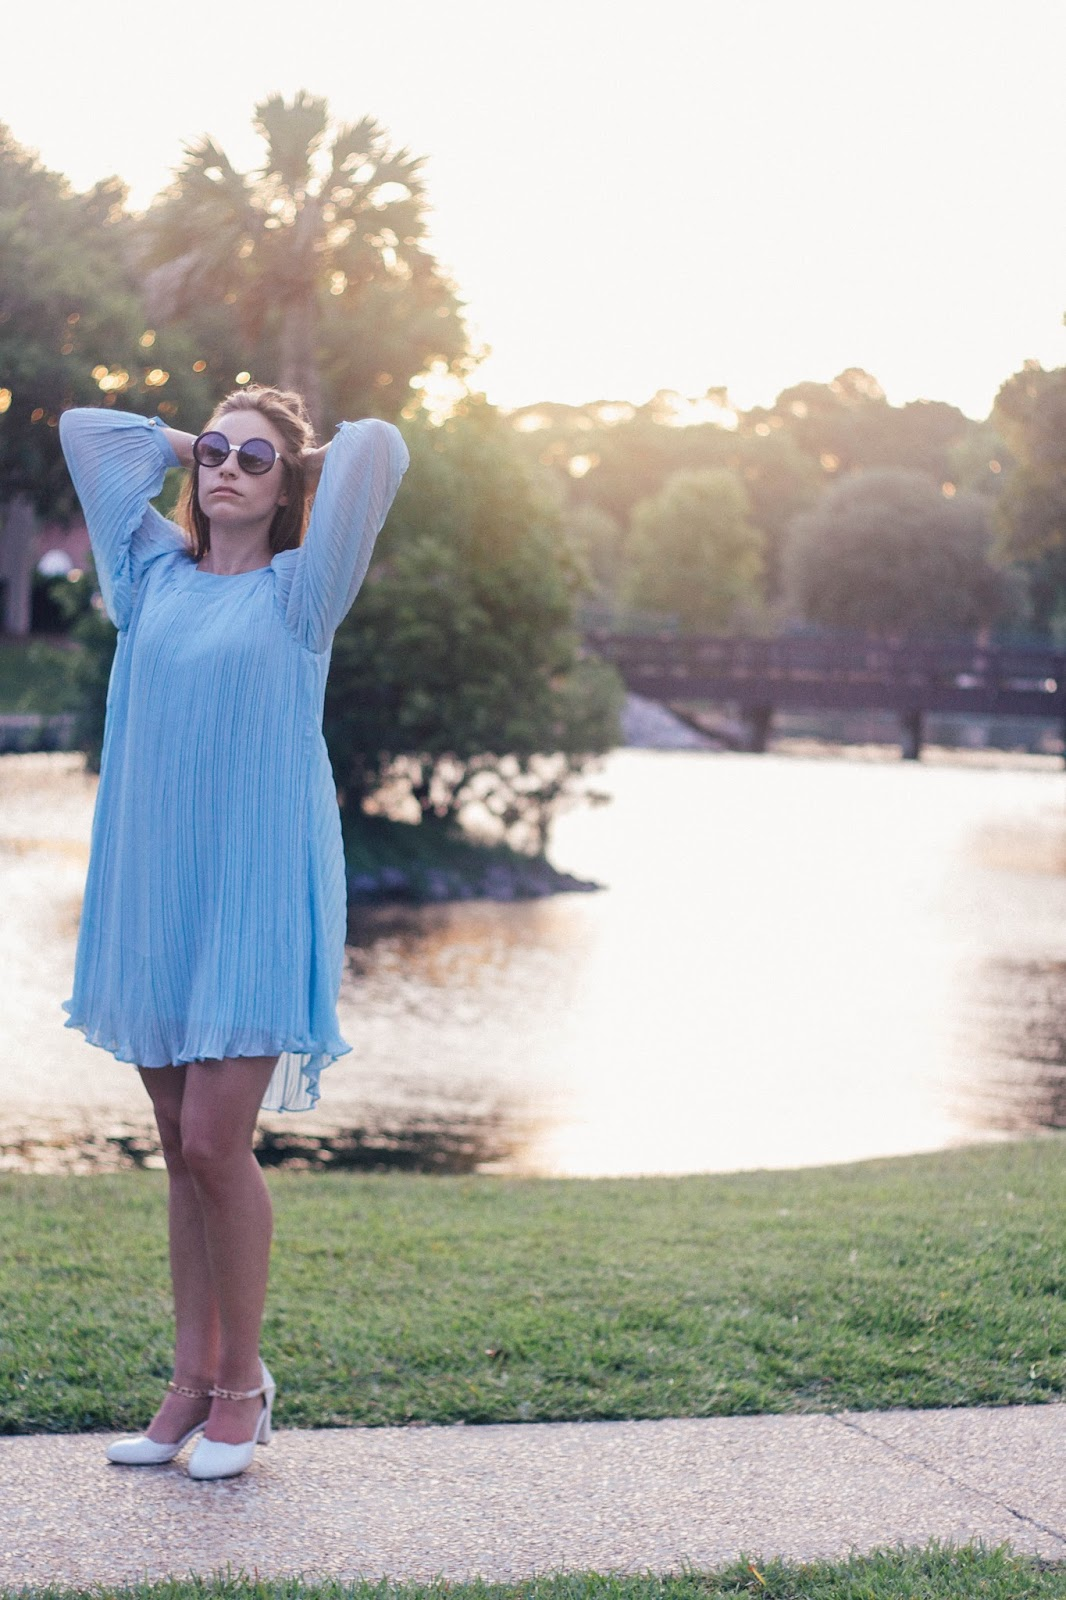 60's style, 60's outfit, style, outfit, modern, retro, vintage, lana del rey style, mad men style, megan draper, summer, beach, sunset, feminine, dear creatures, personal style blogger, movie blogger, screenwriting, costume design,